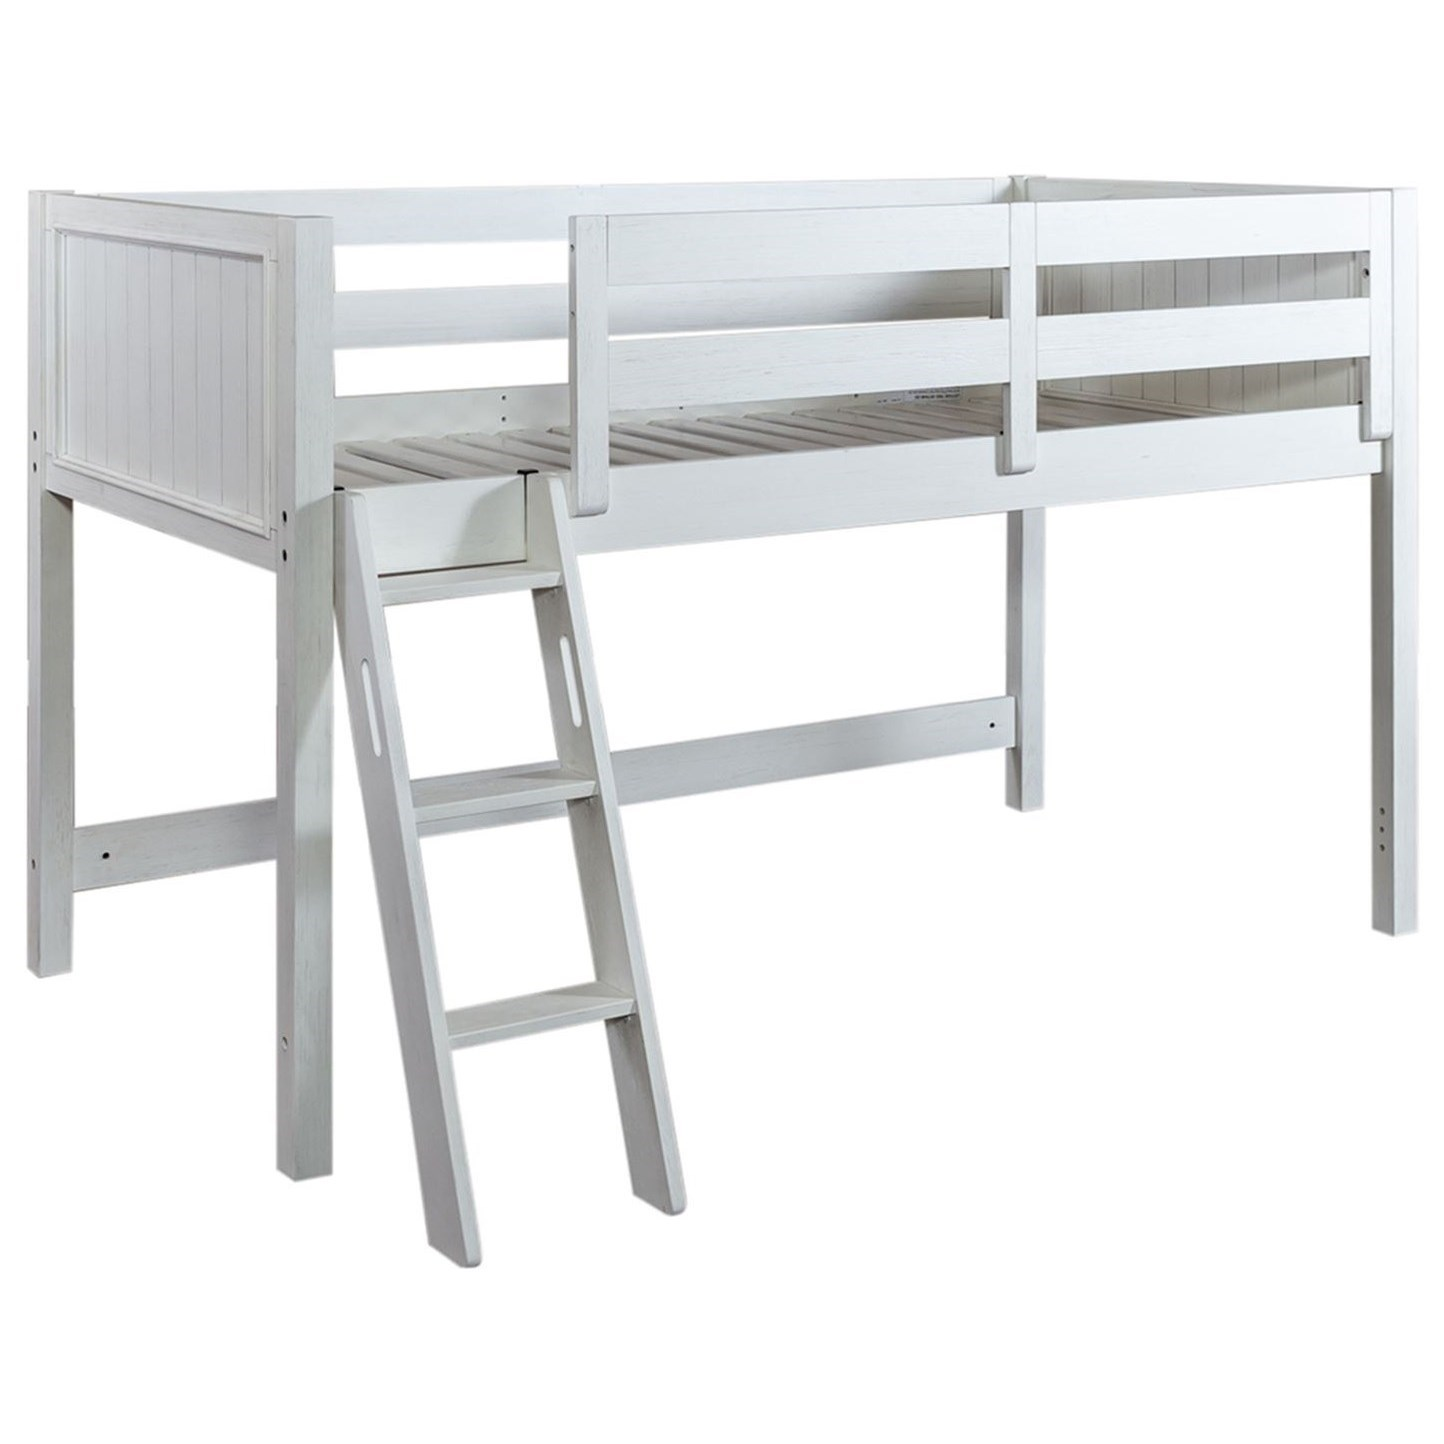 Allyson Park Twin Loft Bed Open by Liberty Furniture at Home Collections Furniture